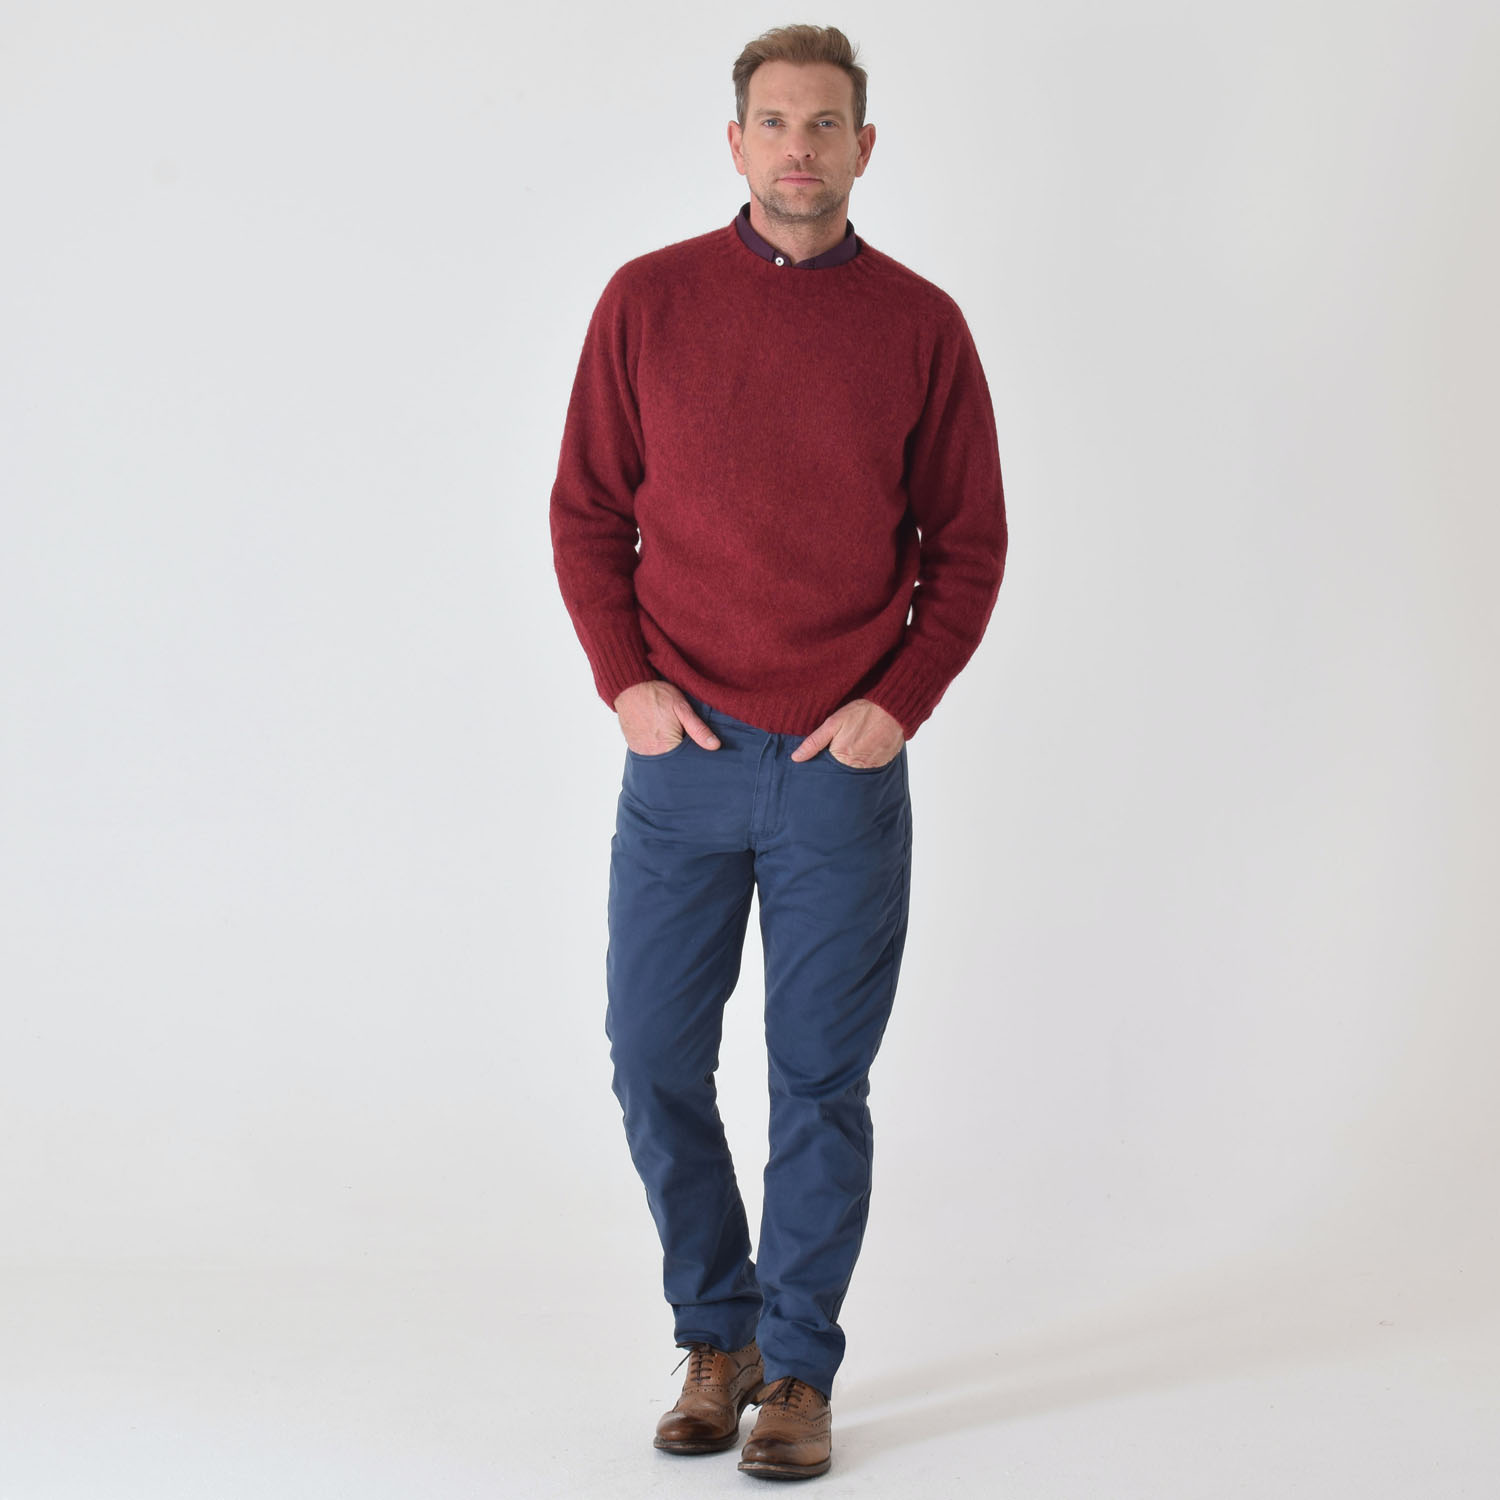 T-lab-coll-brushed -red mens-knitwear